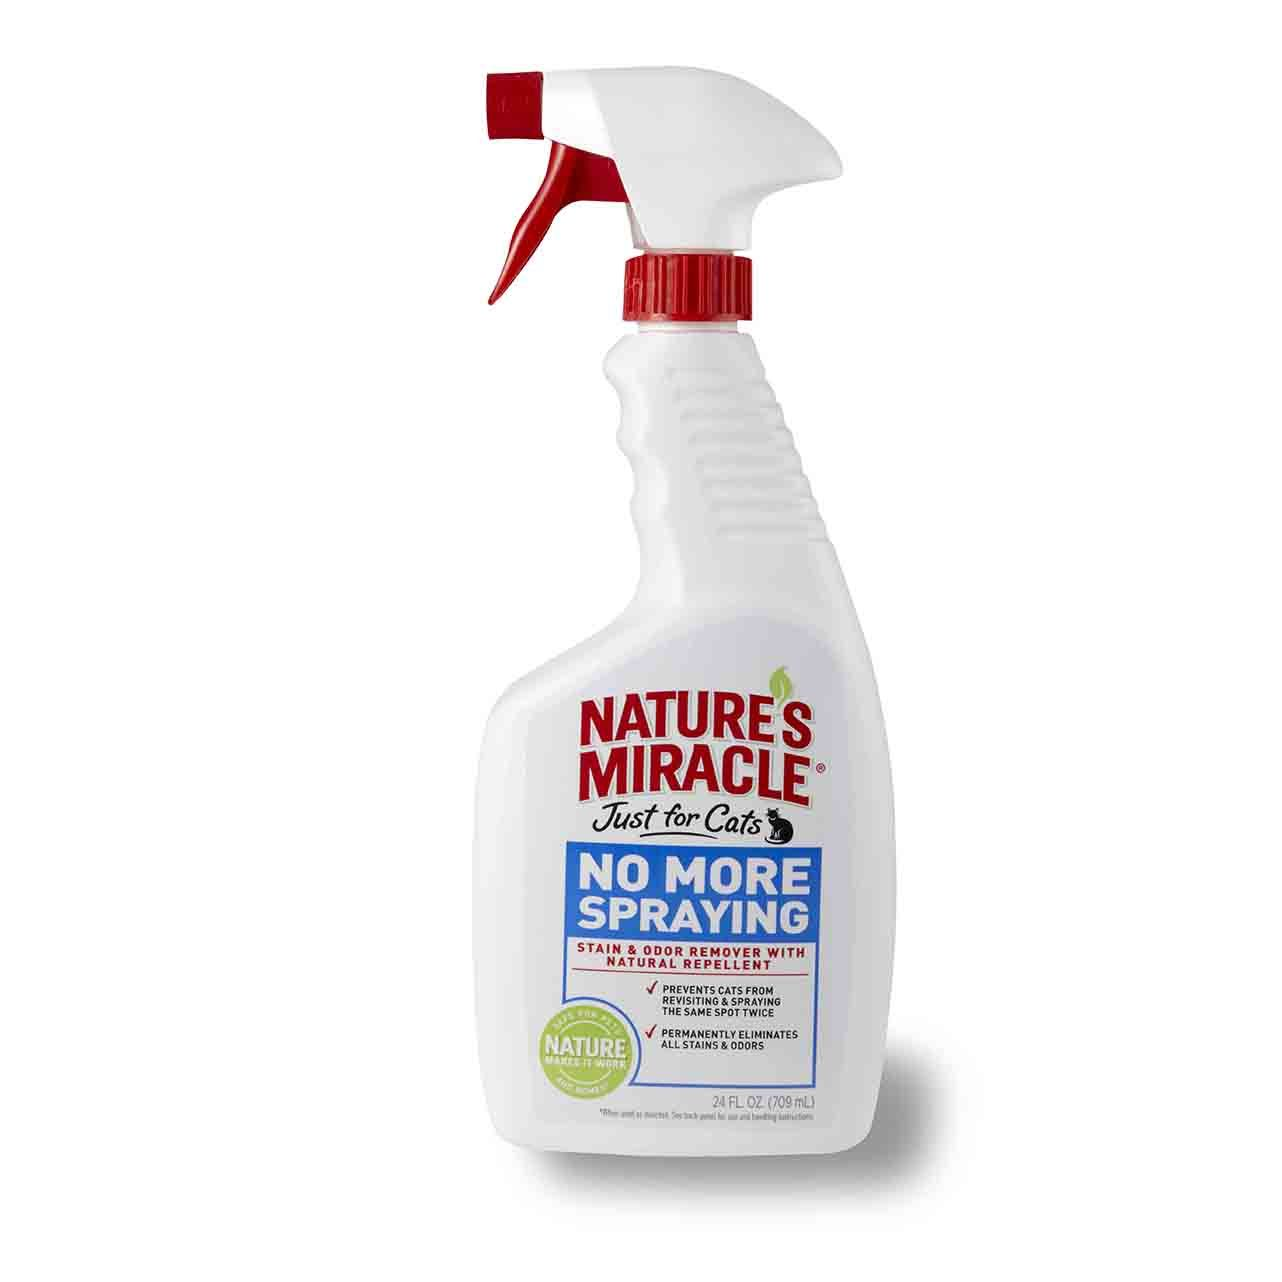 Спрей-антигадин Nature's Miracle JFC No More Spraying Stain&Odor Remover для кошек